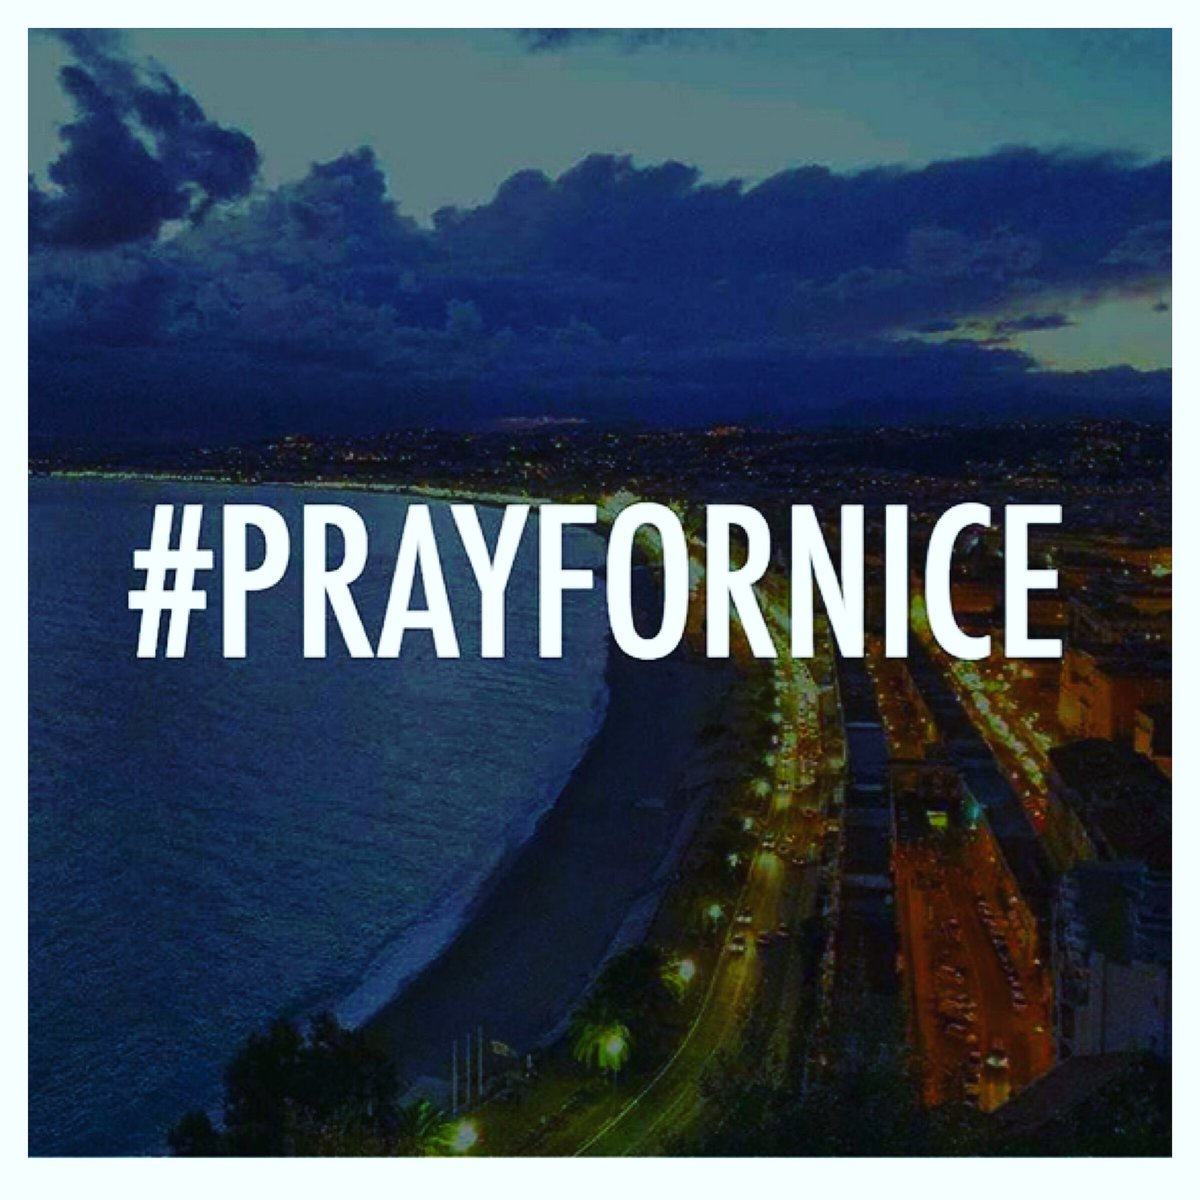 Will this ever stop ? Mindless senseless violence #nice https://t.co/nxvS9NHyGK